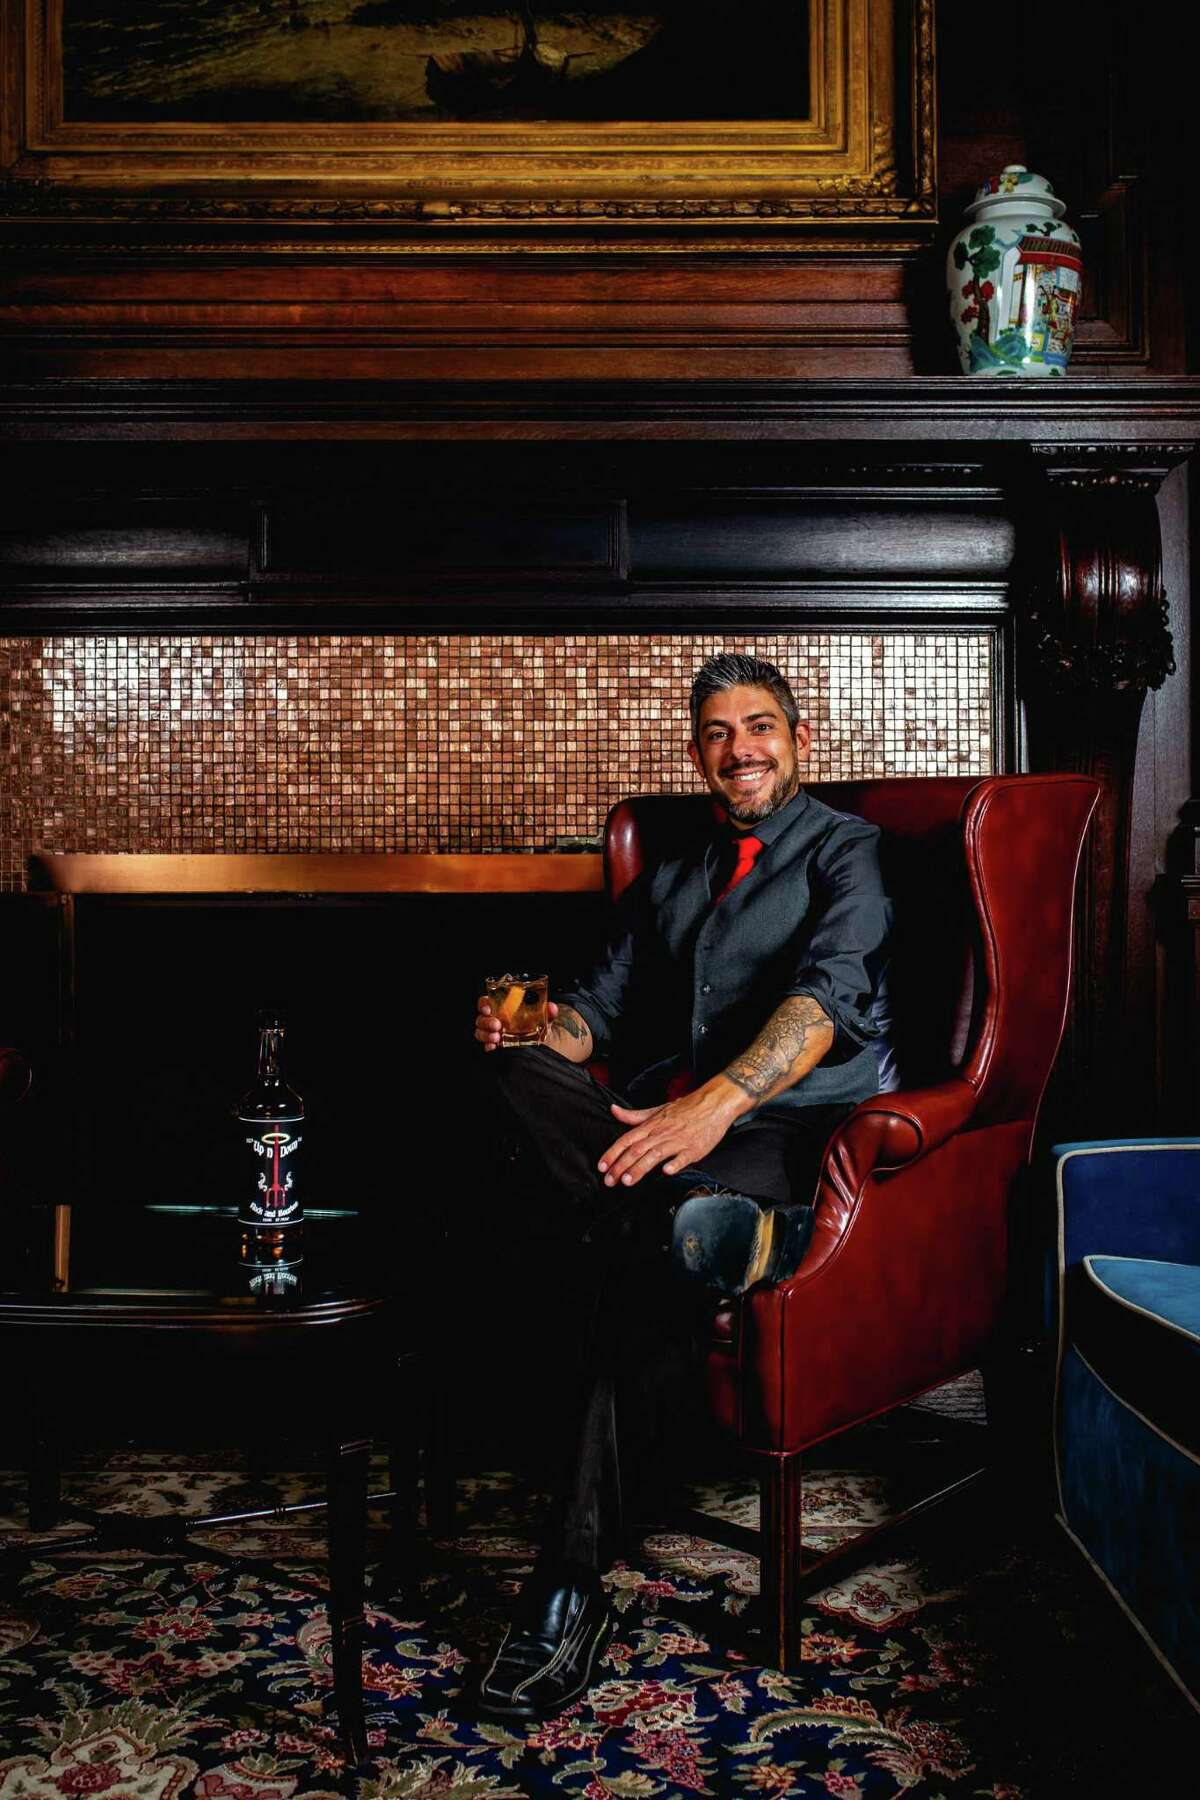 Justin Morales, founder of Up n' Down rock and bourbon.